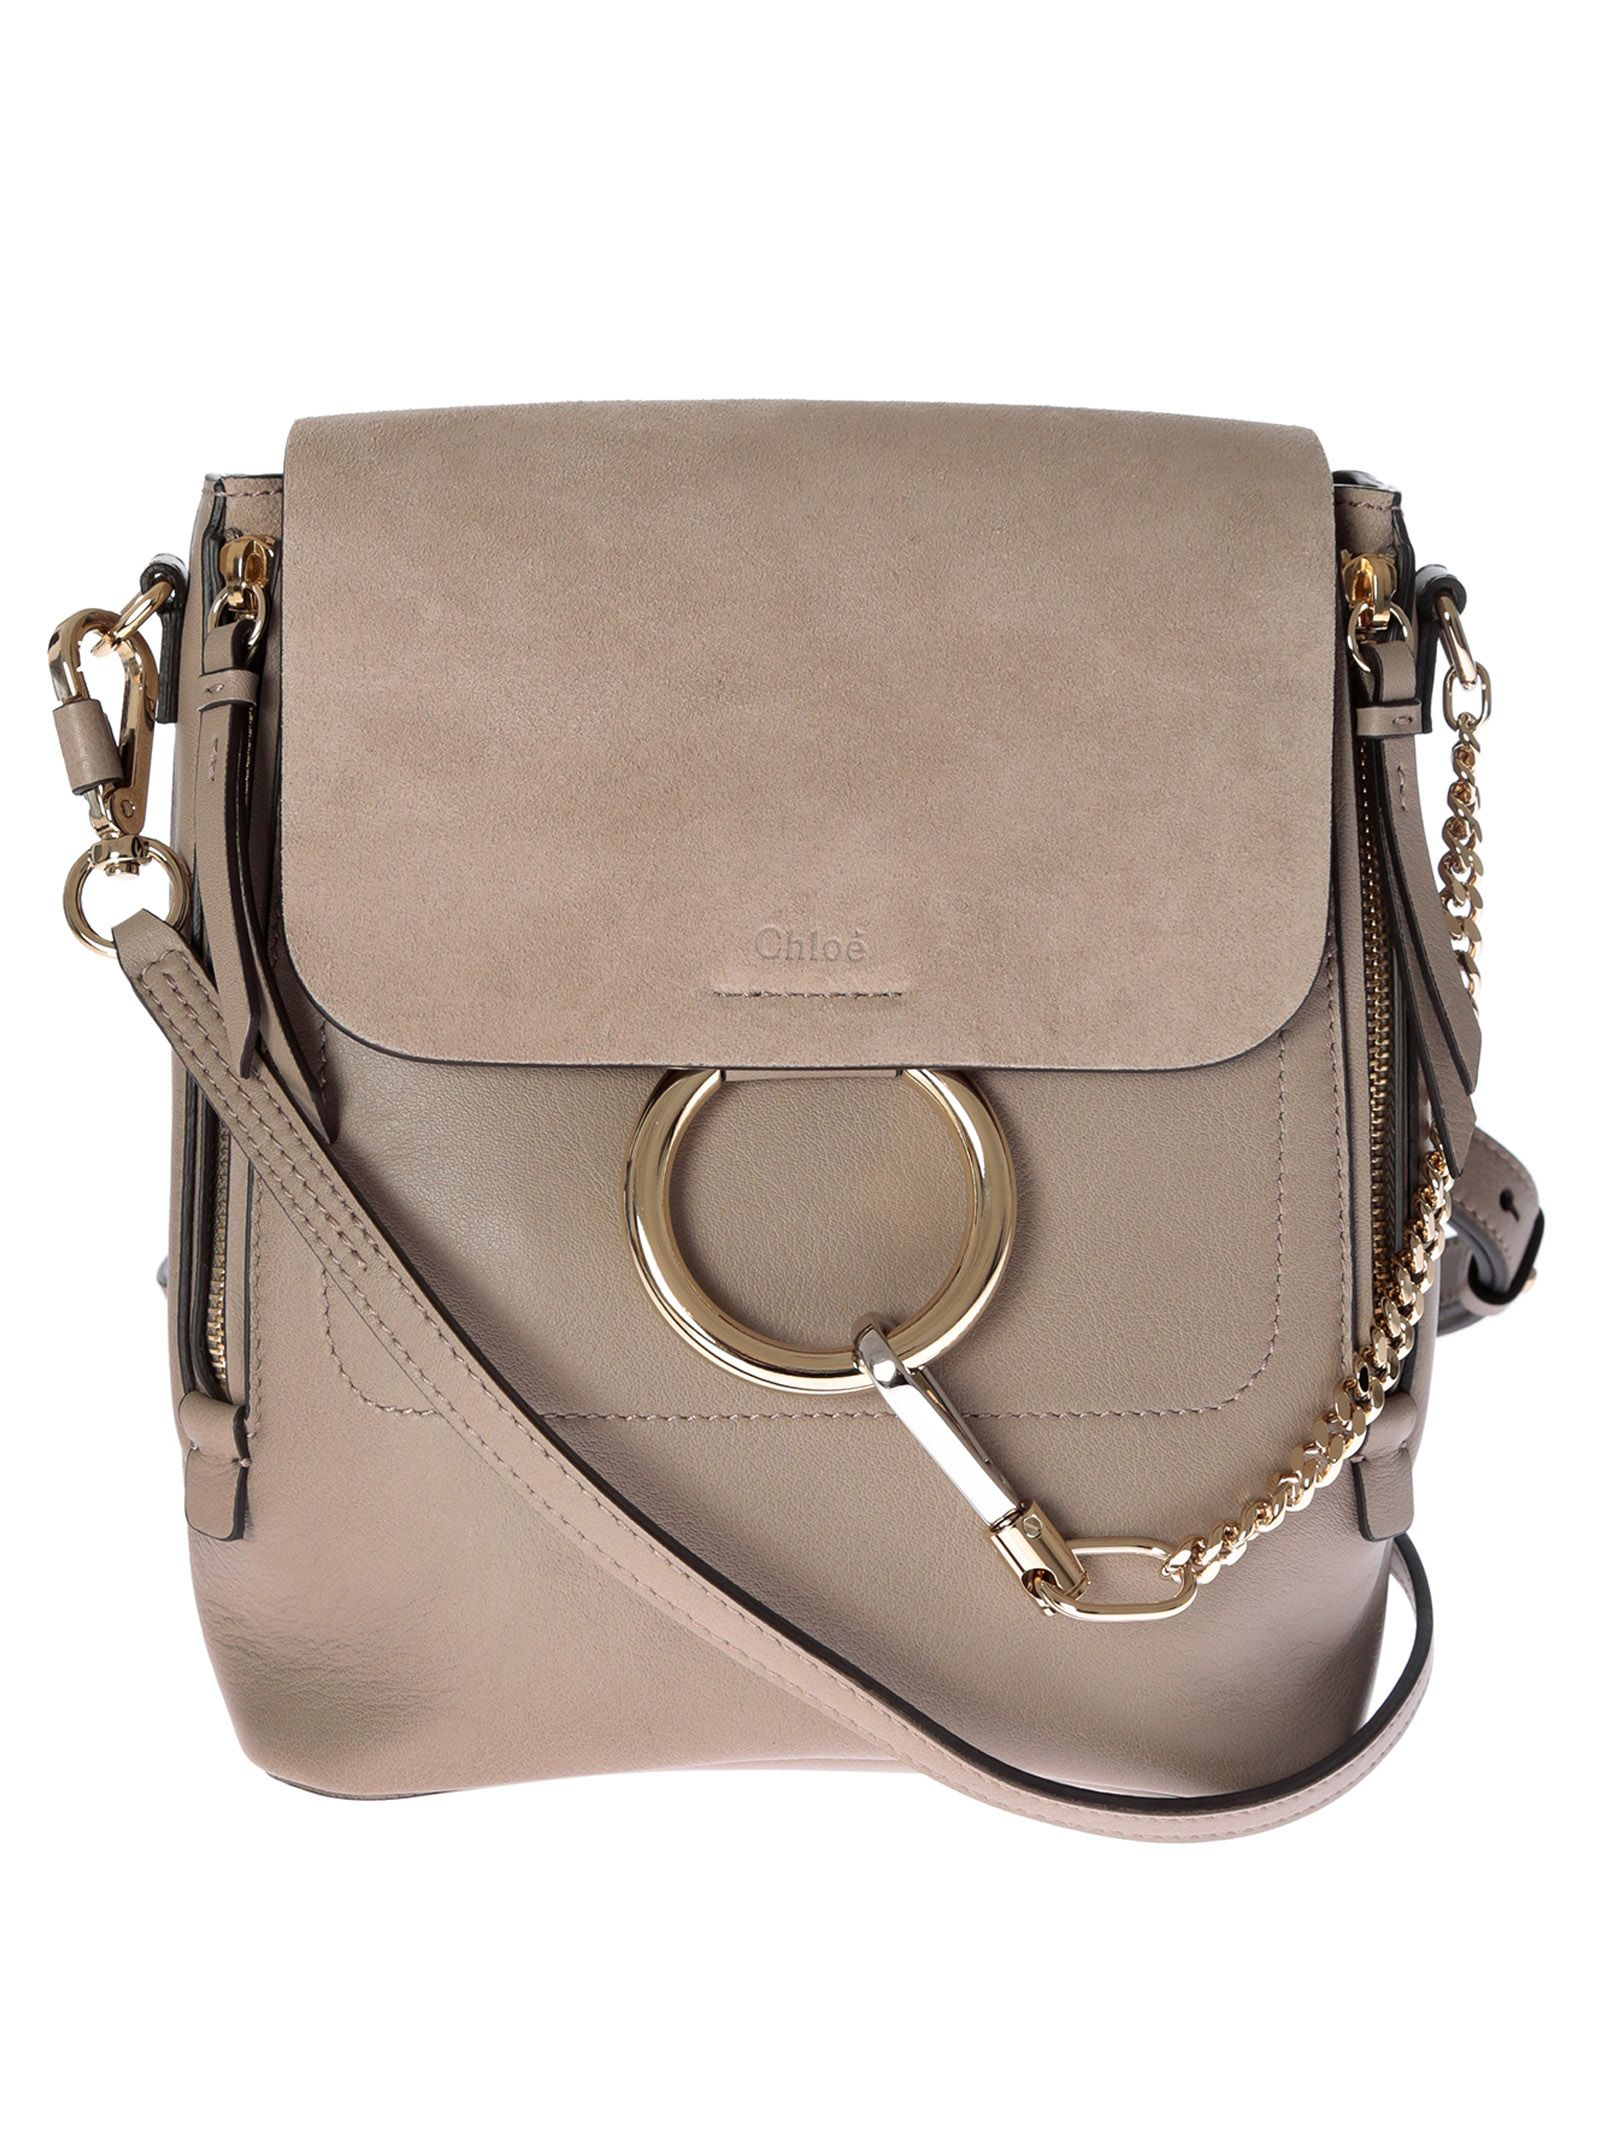 3dcb88deb3b2 Shop Italist Holdalls and Backpacks on sale at the Marie Claire Edit